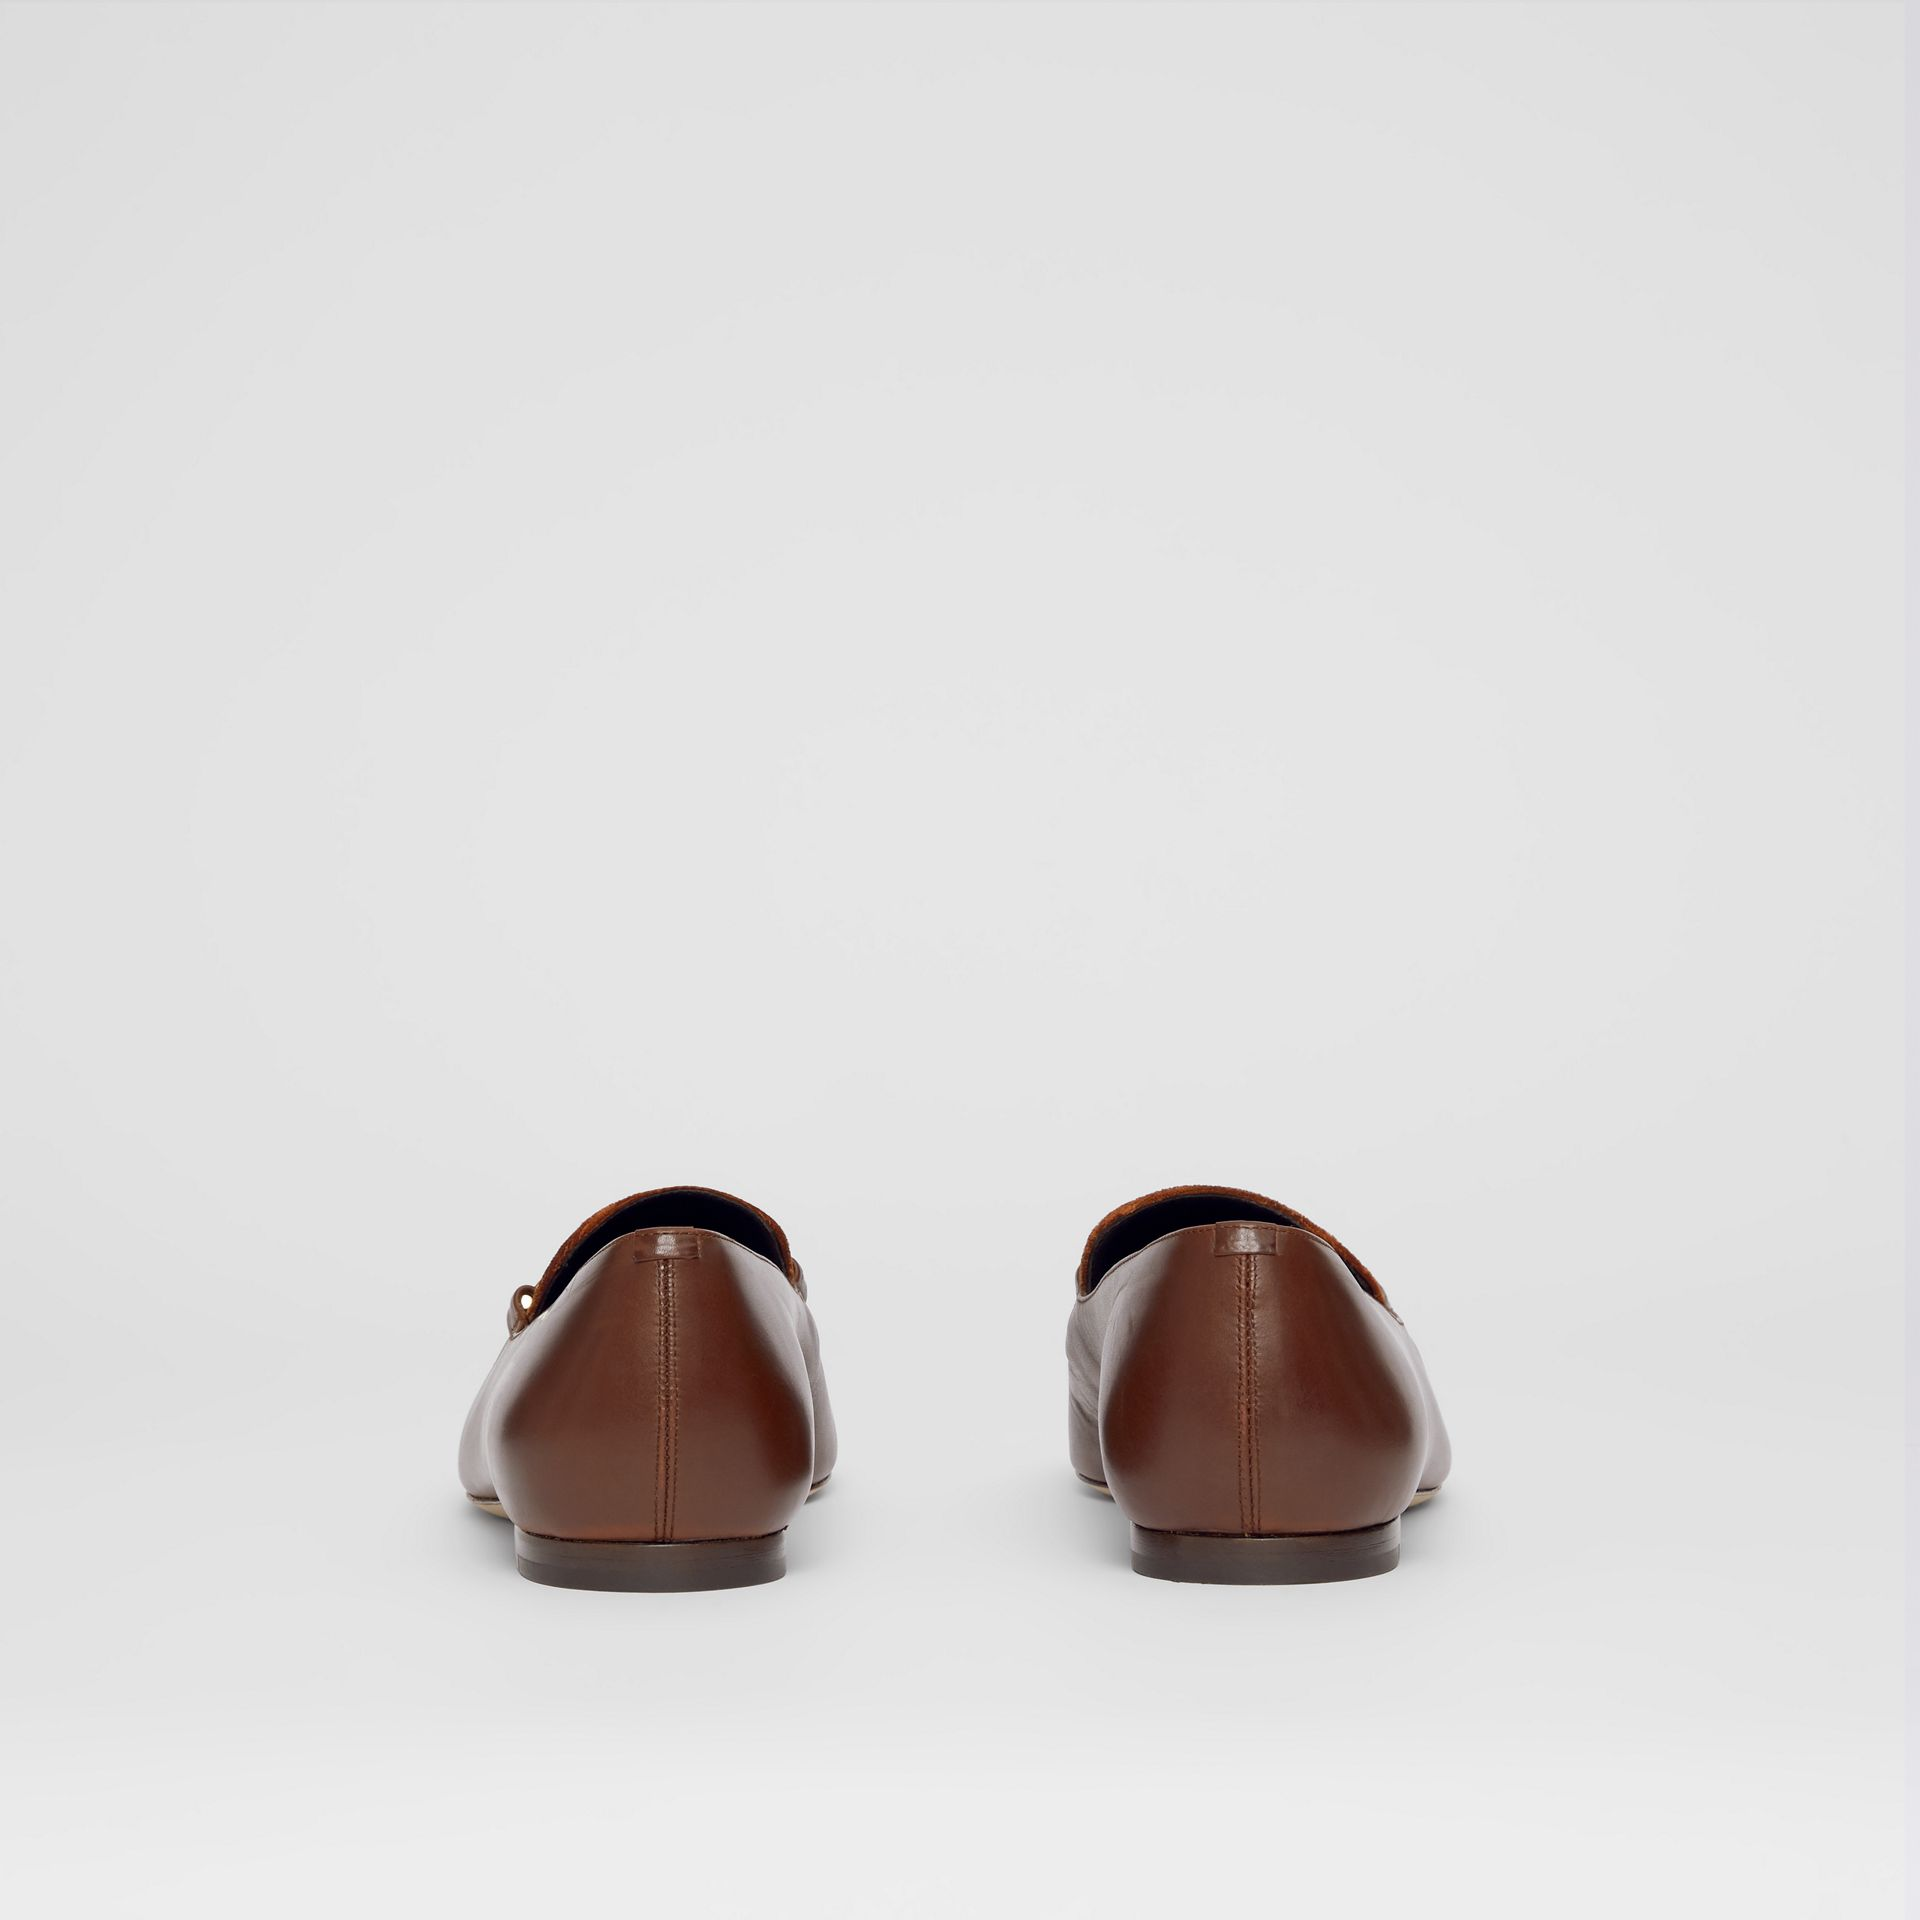 Monogram Motif Velvet and Leather Loafers in Dark Chocolate/tan - Women | Burberry - gallery image 4